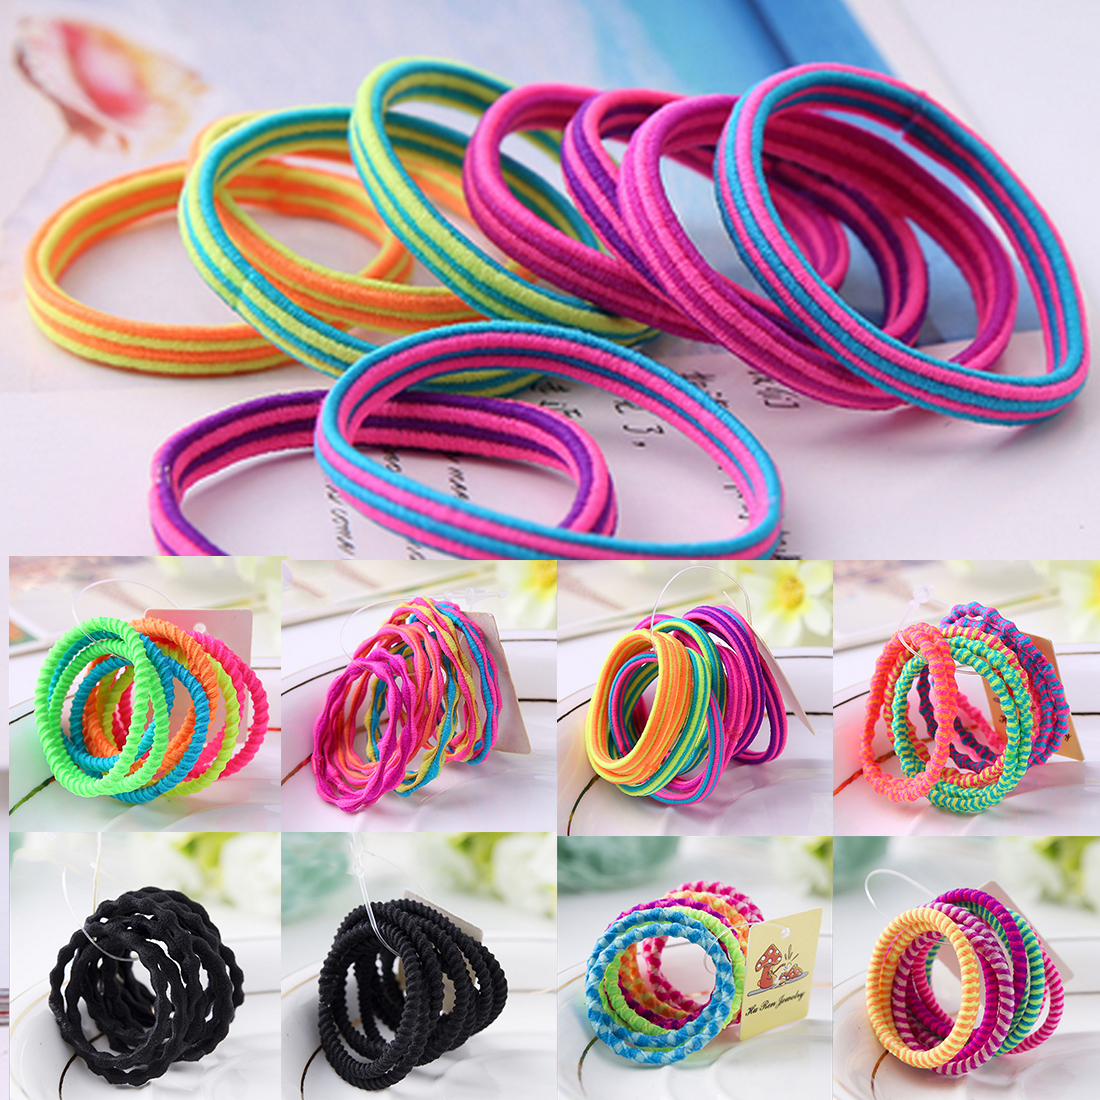 10PCS/Lot Girls Hairband Colorful Elastic Hair Band Lovely Hair Ropes Ponytail Holder Headwear Hair Accessories Candy Color 50pcs korean candy color headwear hair ring ropes ponytail holder disposable elastic hair bands for girls hair accessories